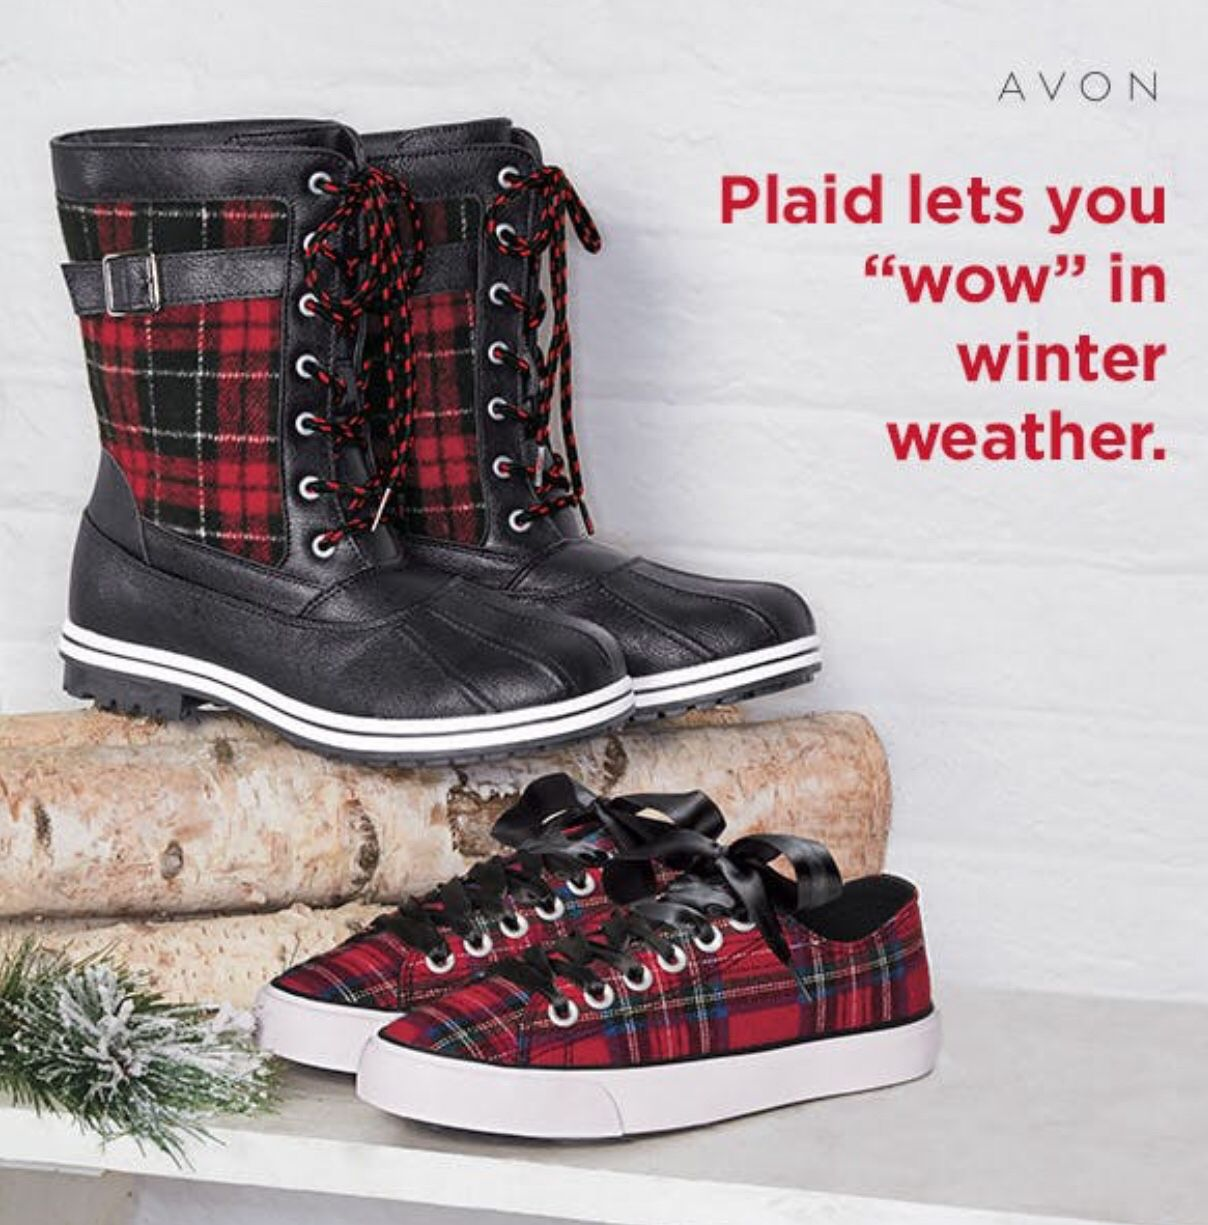 Plaid boots and sneakers | Boots, Plaid